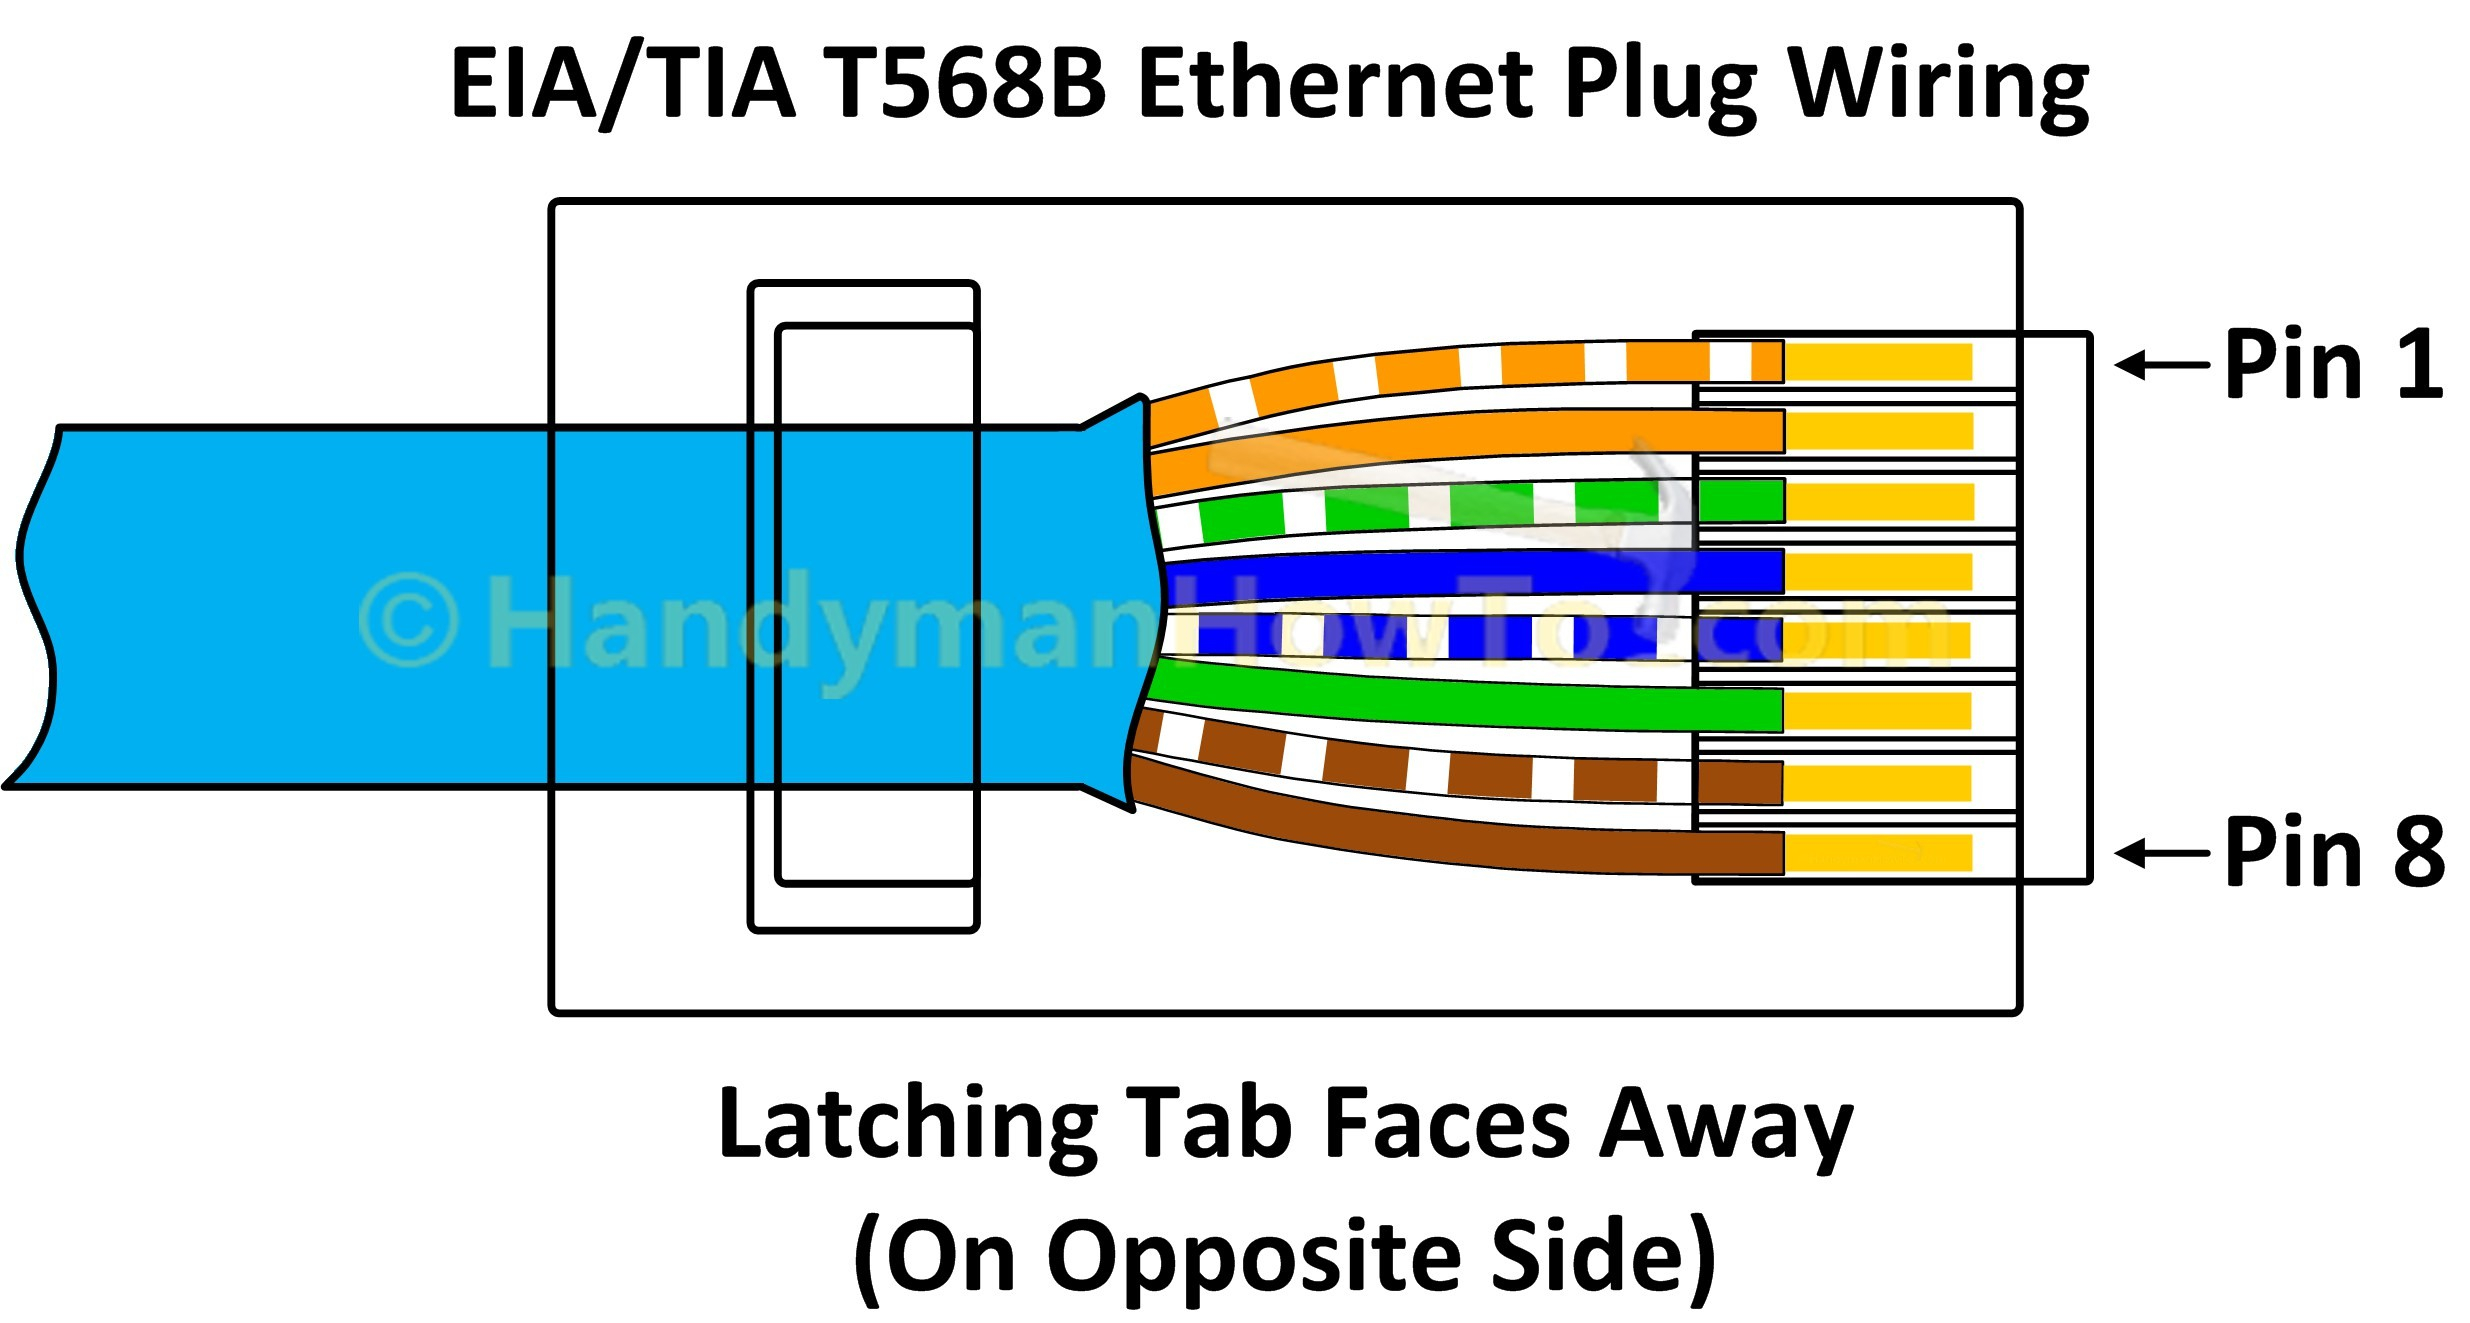 Cat 5 Wiring Diagram Wall Jack Collection | Wiring Diagram ... Wiring Diagram For Cat Wall Jack on